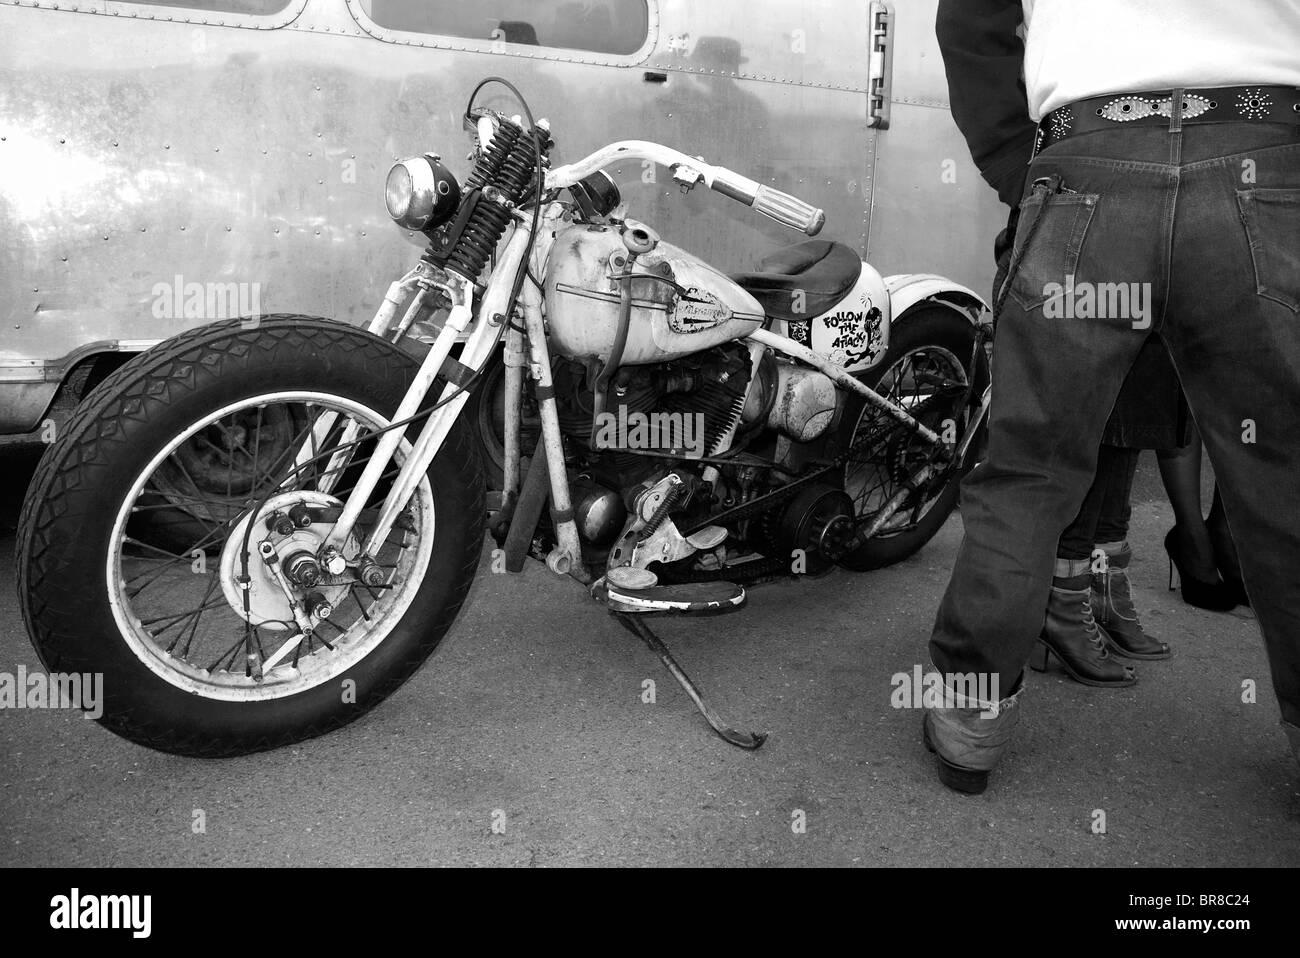 Hot Rod Harley >> Biker With Classic Harley Davidson Motorcycle At Ace Cafe